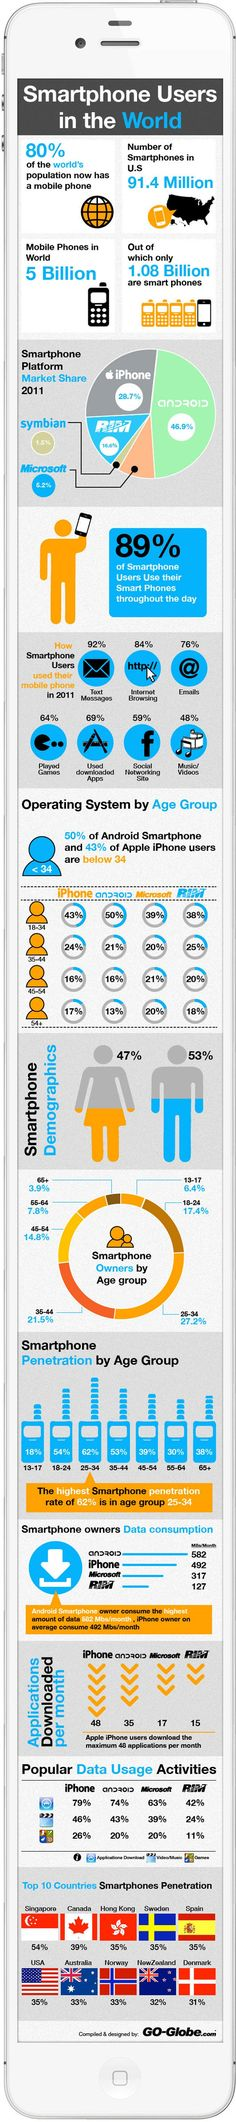 Smartphones users in the World. Social Media --> goo.gl/Rgu7t